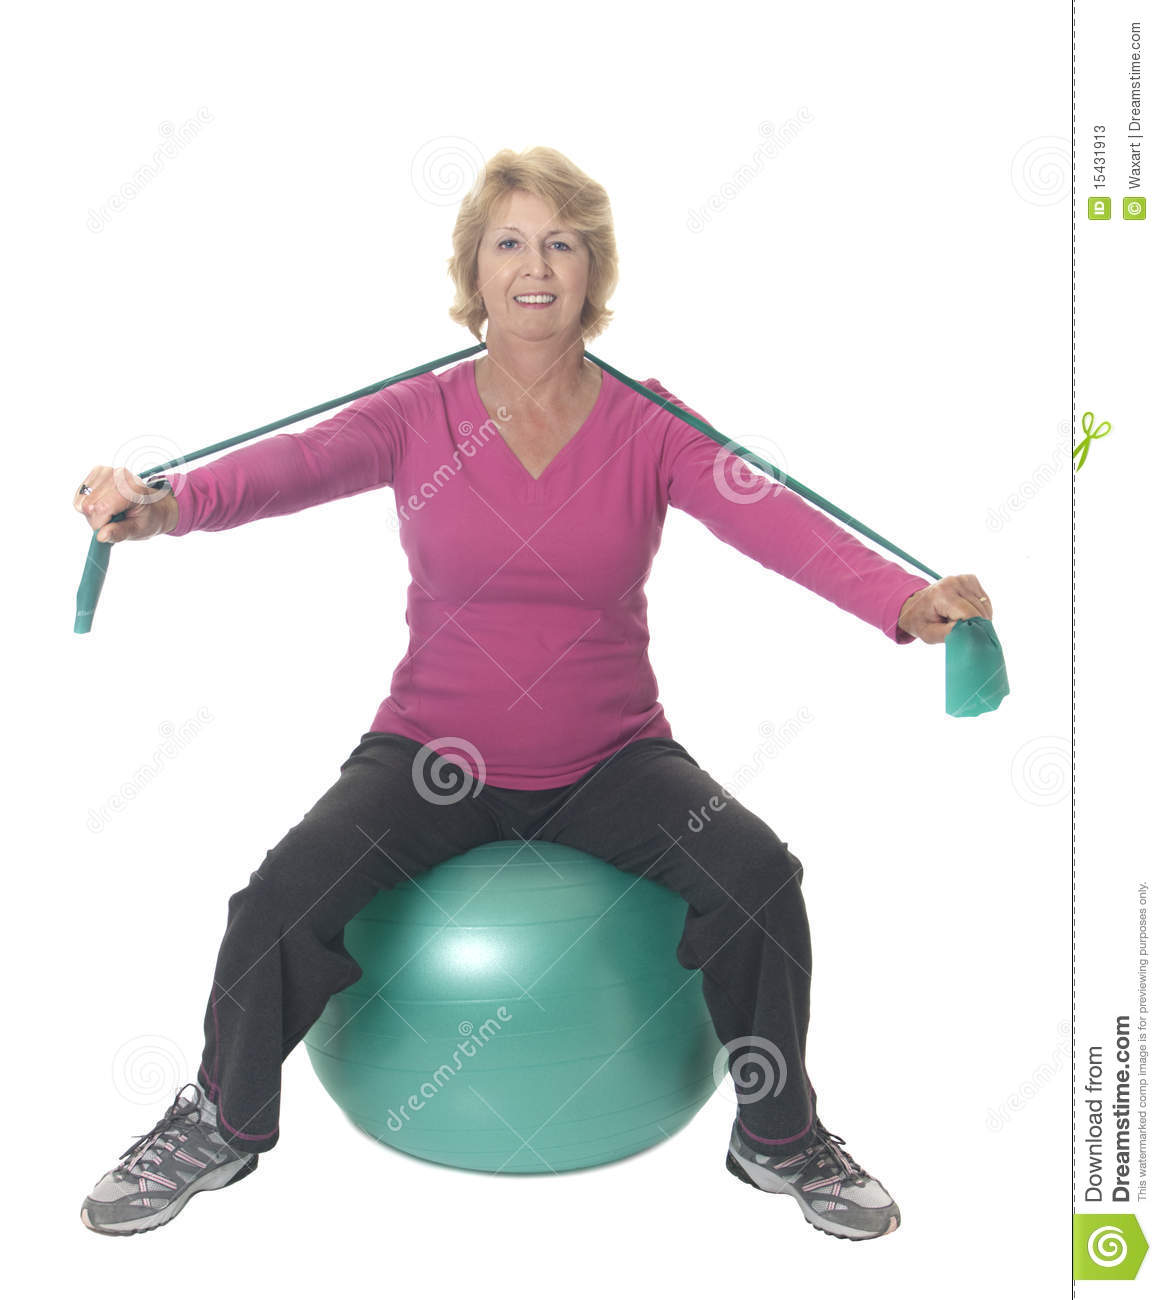 ... On Exercise Ball With Resistance Band Stock Photos - Image: 15431913